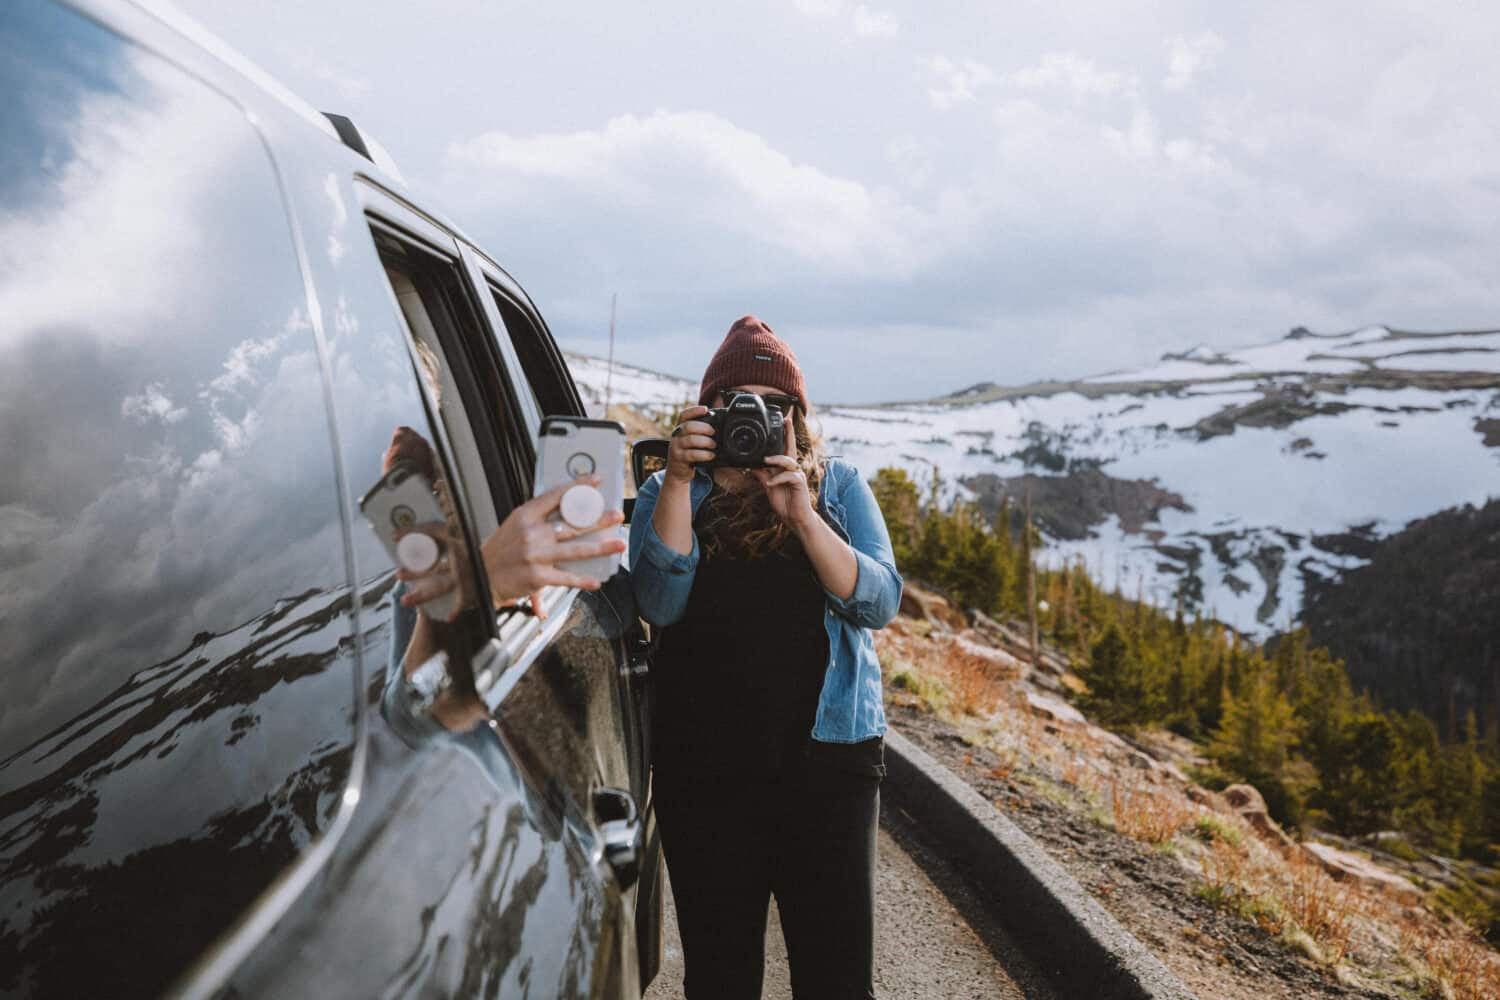 Paige Denkin taking photos - Tundra at Rocky Mountain National Park - TheMandagies.com